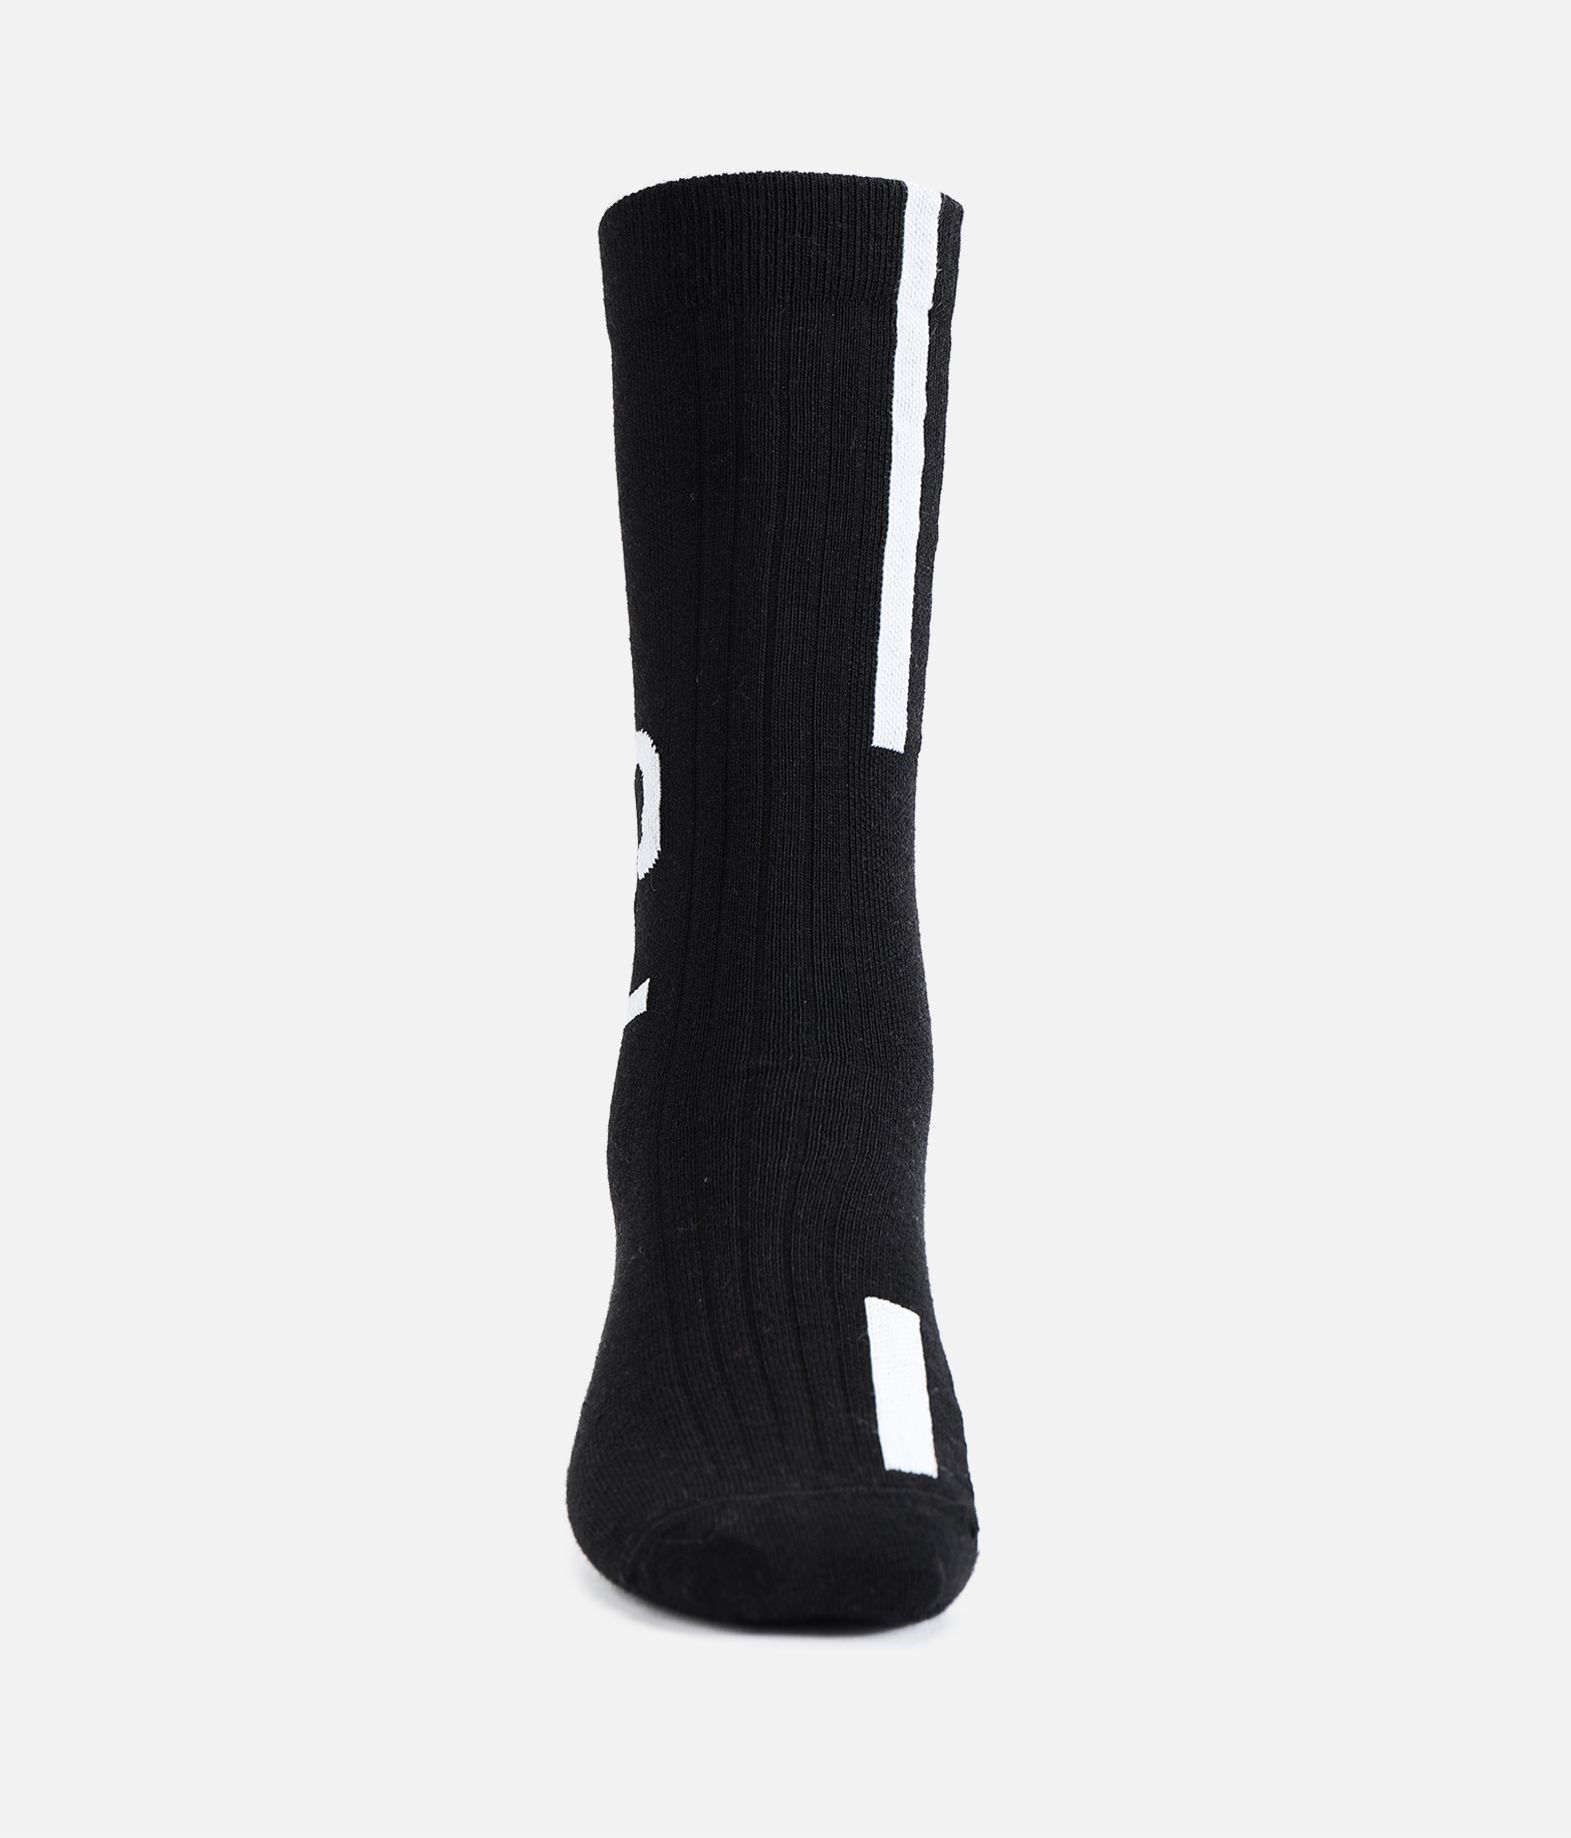 Y-3 Y-3 Wool-Nylon Socks Socks E r